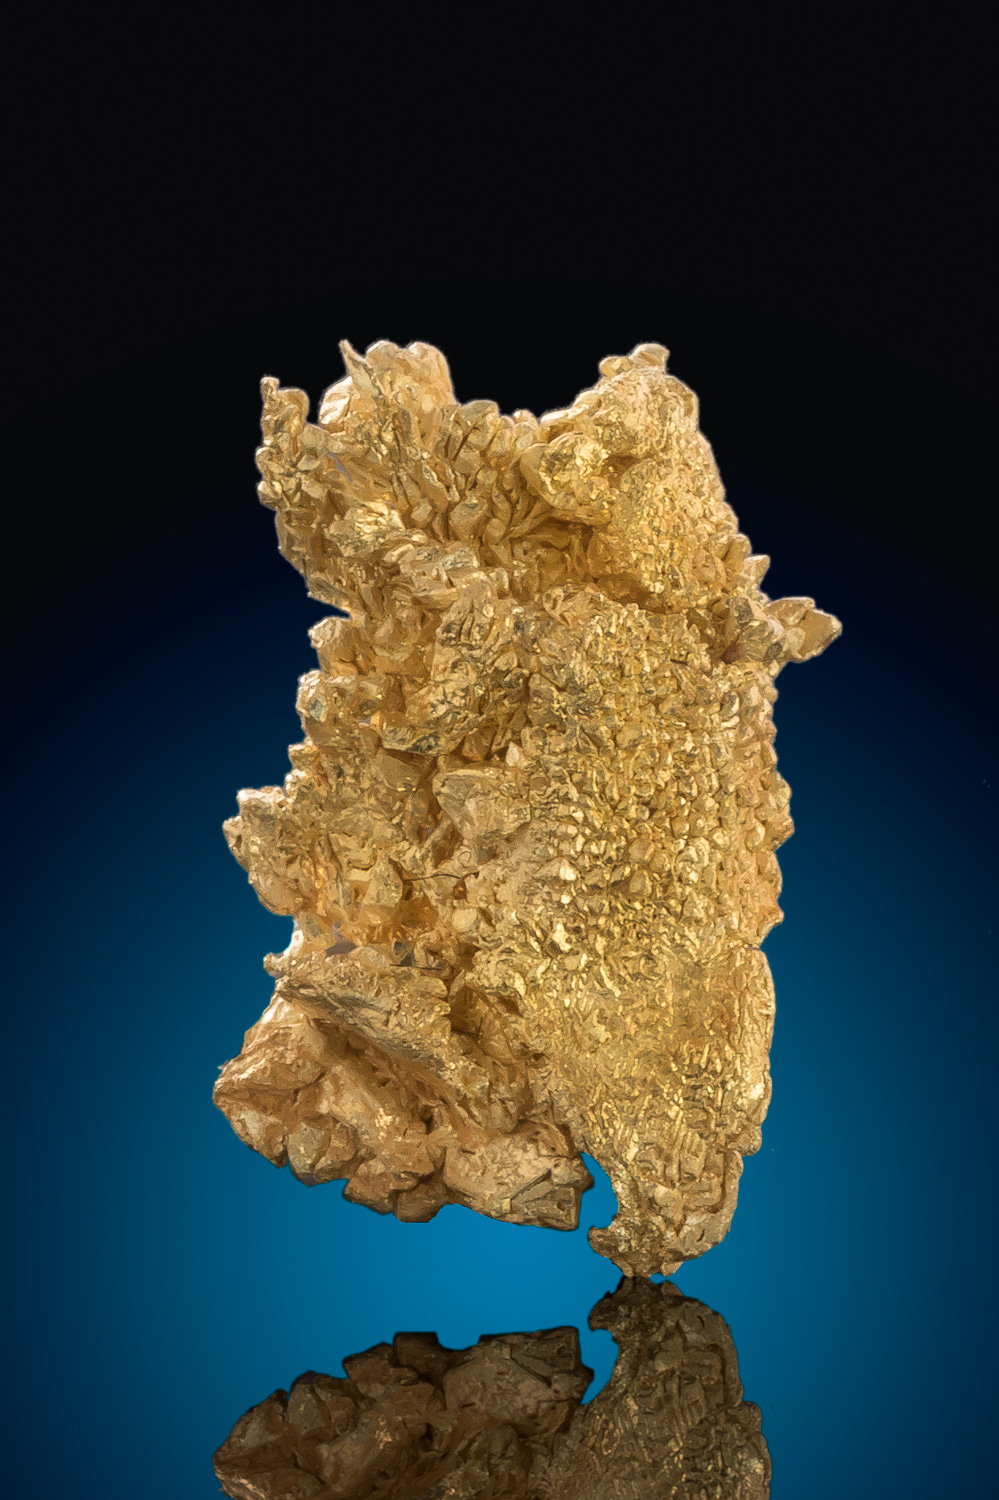 Brilliant Crystal Structure - Natural Gold Crystal